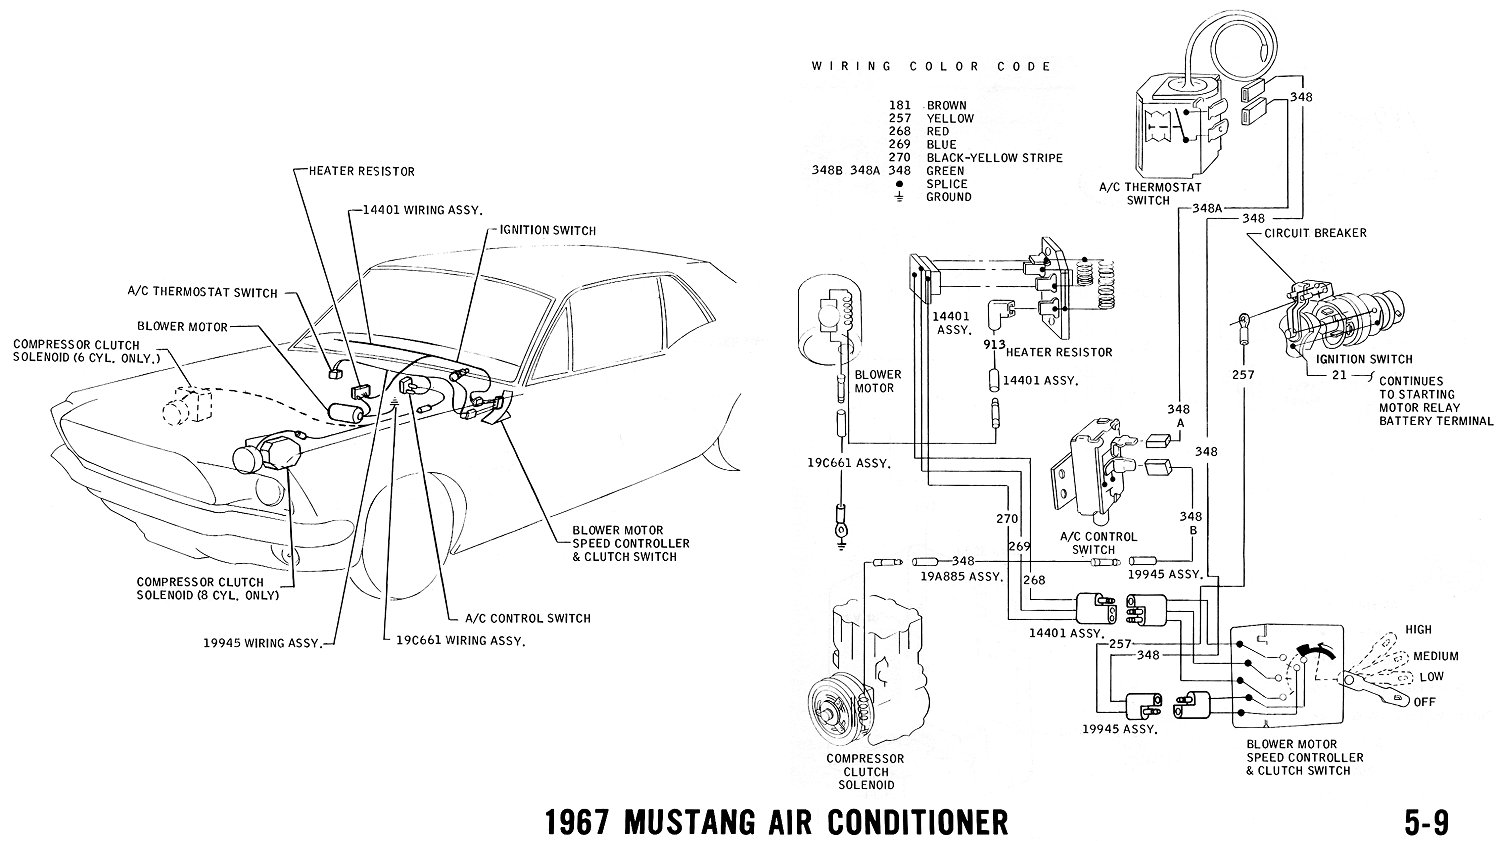 67ac 65 mustang dash wiring diagram 1965 ford mustang wiring diagram 1969 mustang dash wiring diagram at fashall.co